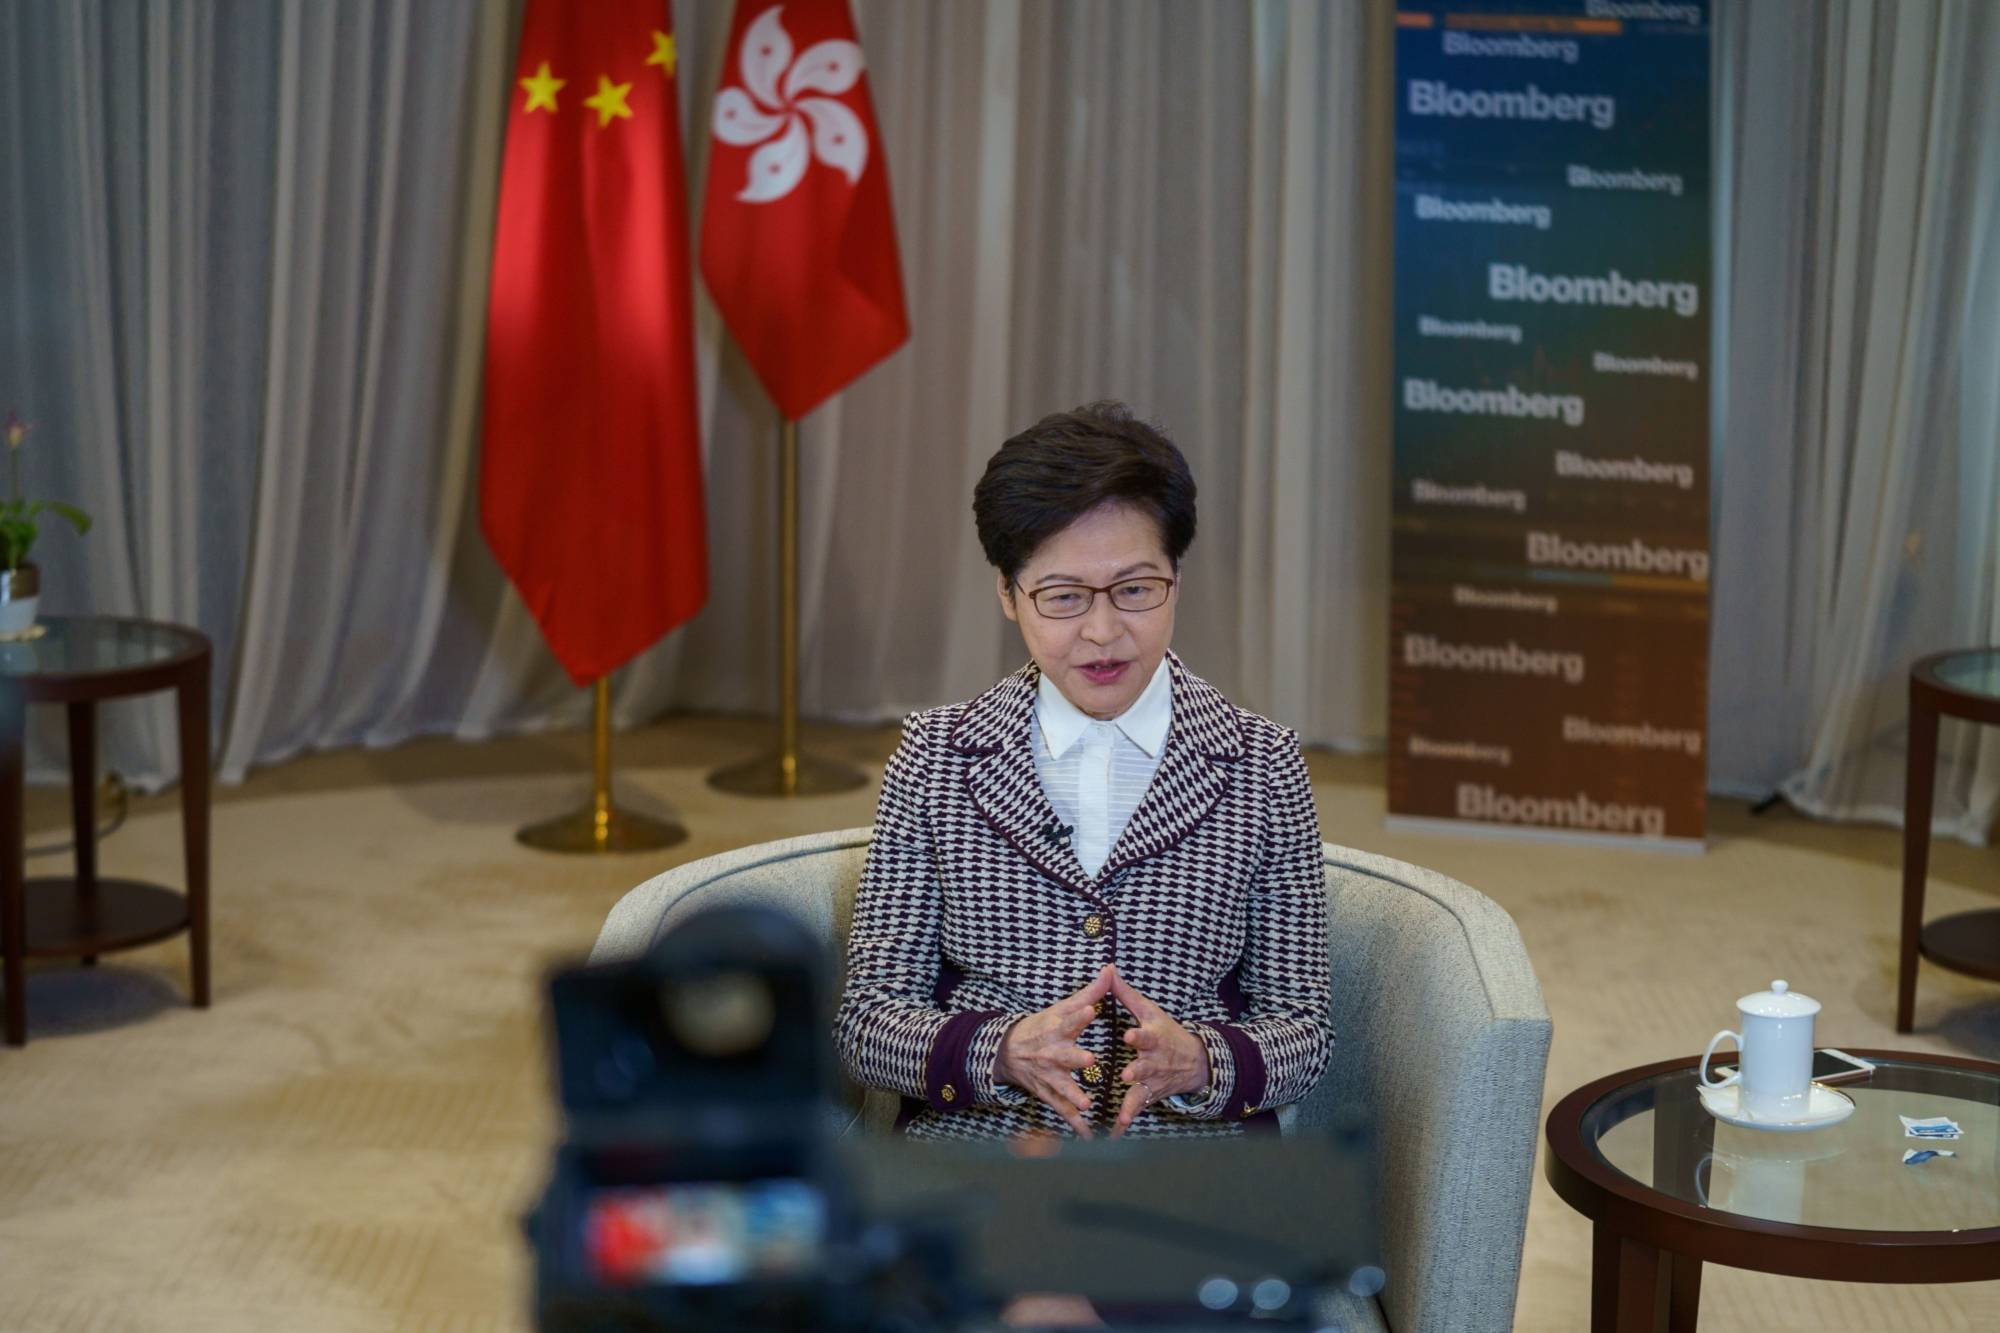 Carrie Lam, Hong Kong's chief executive, speaks during an interview in Hong Kong.   BLOOMBERG